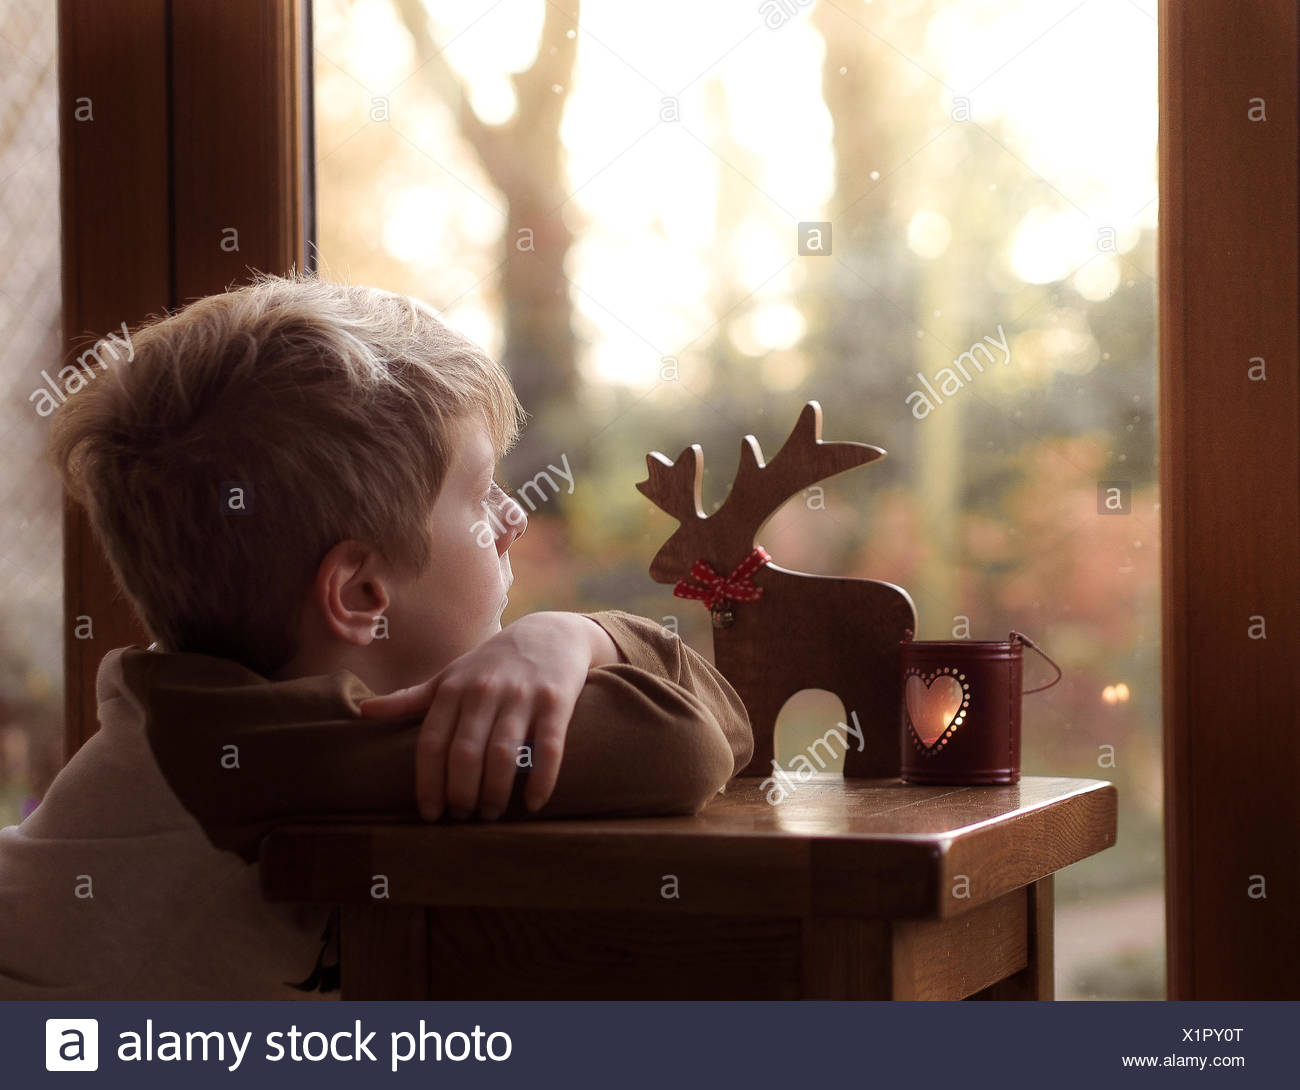 Boy (6-7) looking out of window - Stock Image